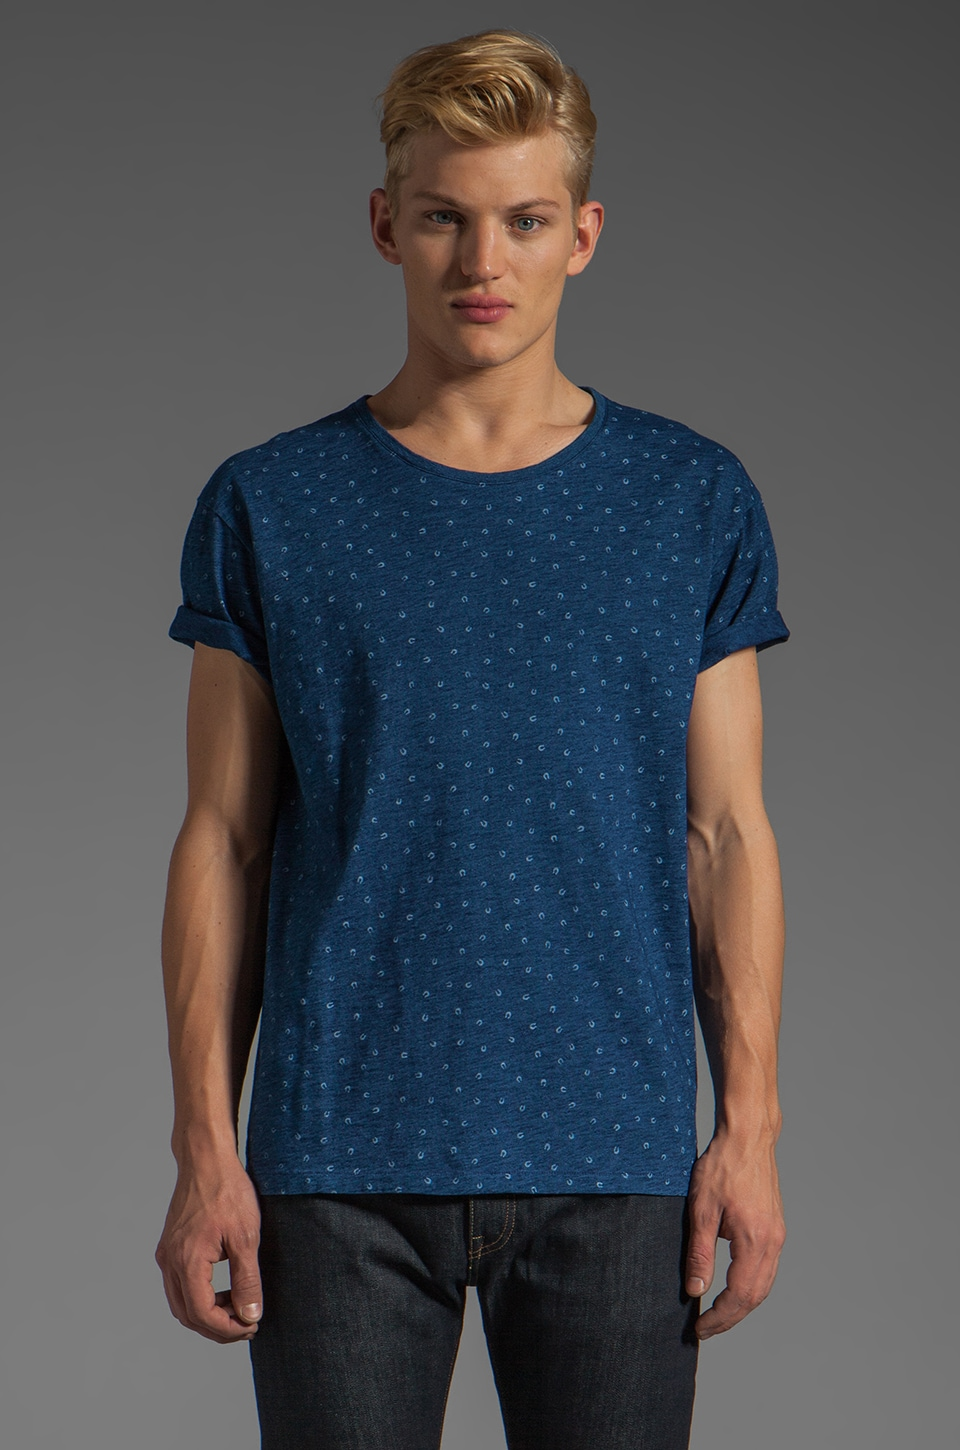 LEVI'S: Made & Crafted Bay Tee in Indigo Horseshoes